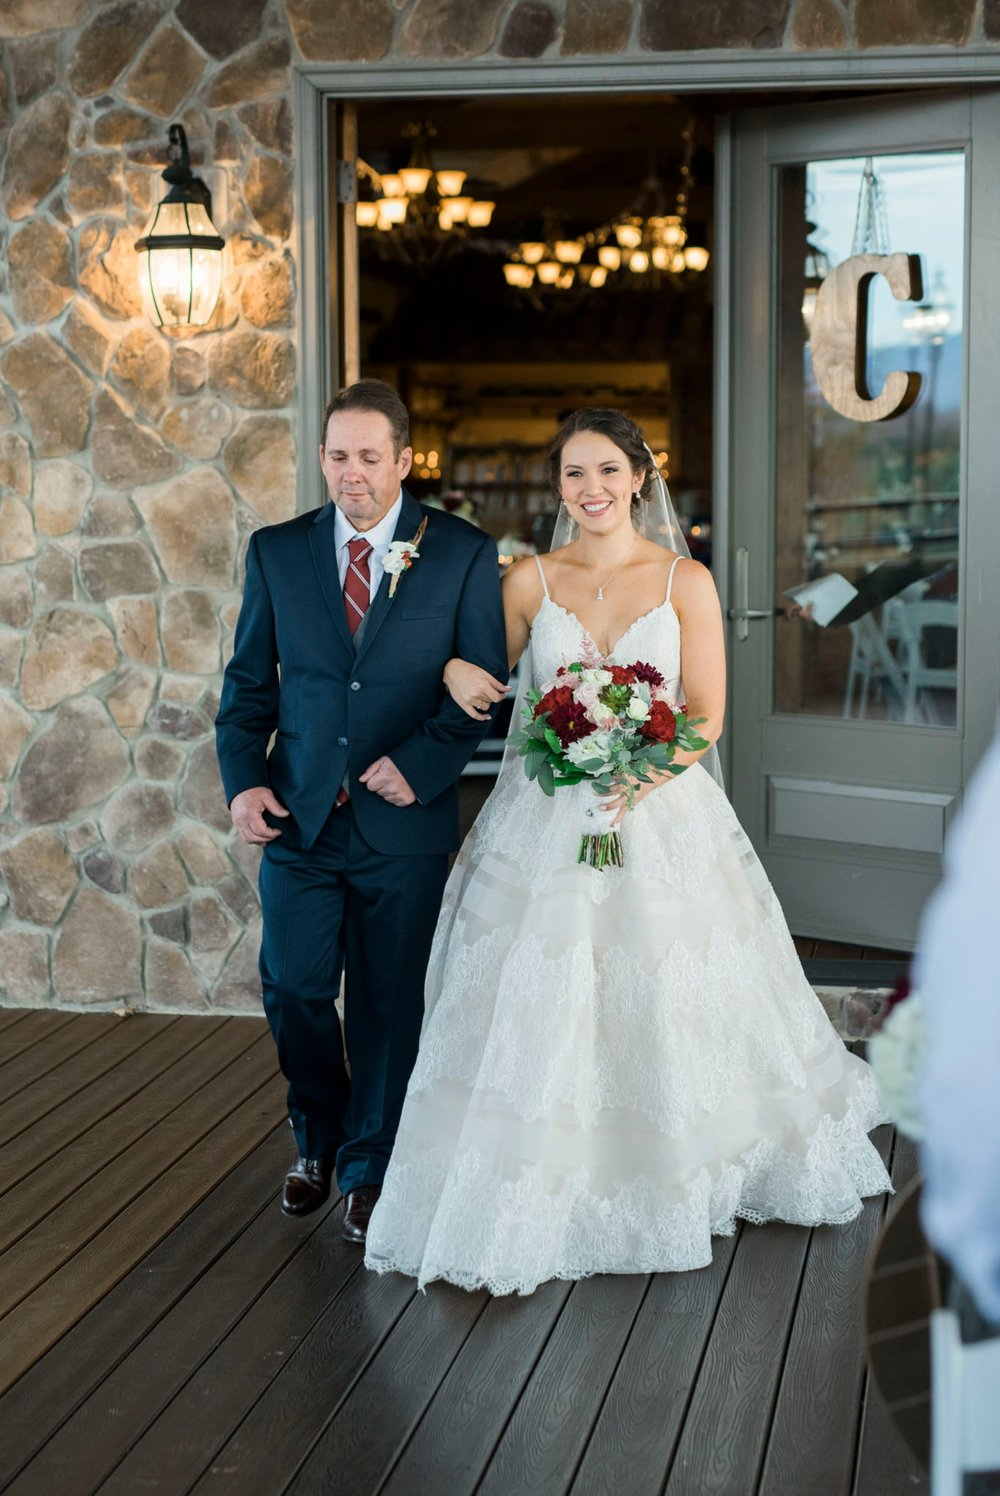 IrvineEstate_LexingtonVA_Wedding_FallWedding_VirginiaWeddingPhotographer 56.jpg